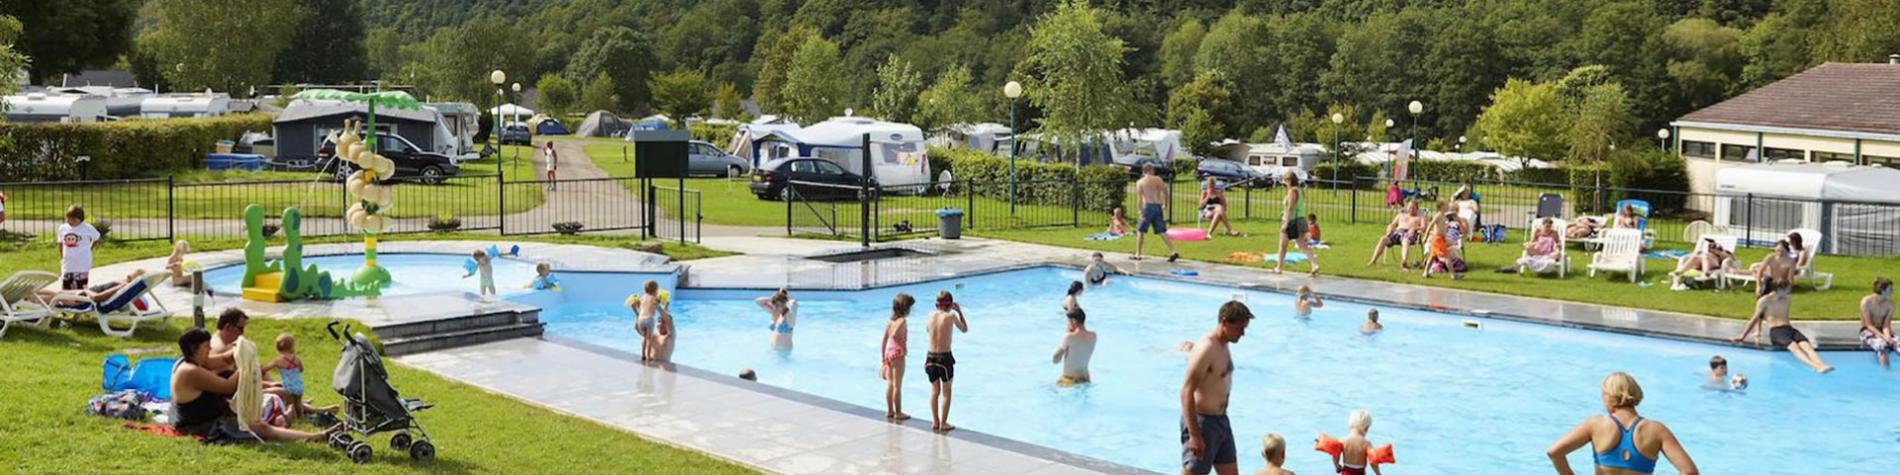 Camping - Spa d'Or - Sart - Emplacements spacieux - Magasin - Animations - Piscine chauffée - Bar - restaurant - motorhomes - 26 tentes - caravanes - chalets-bungalows